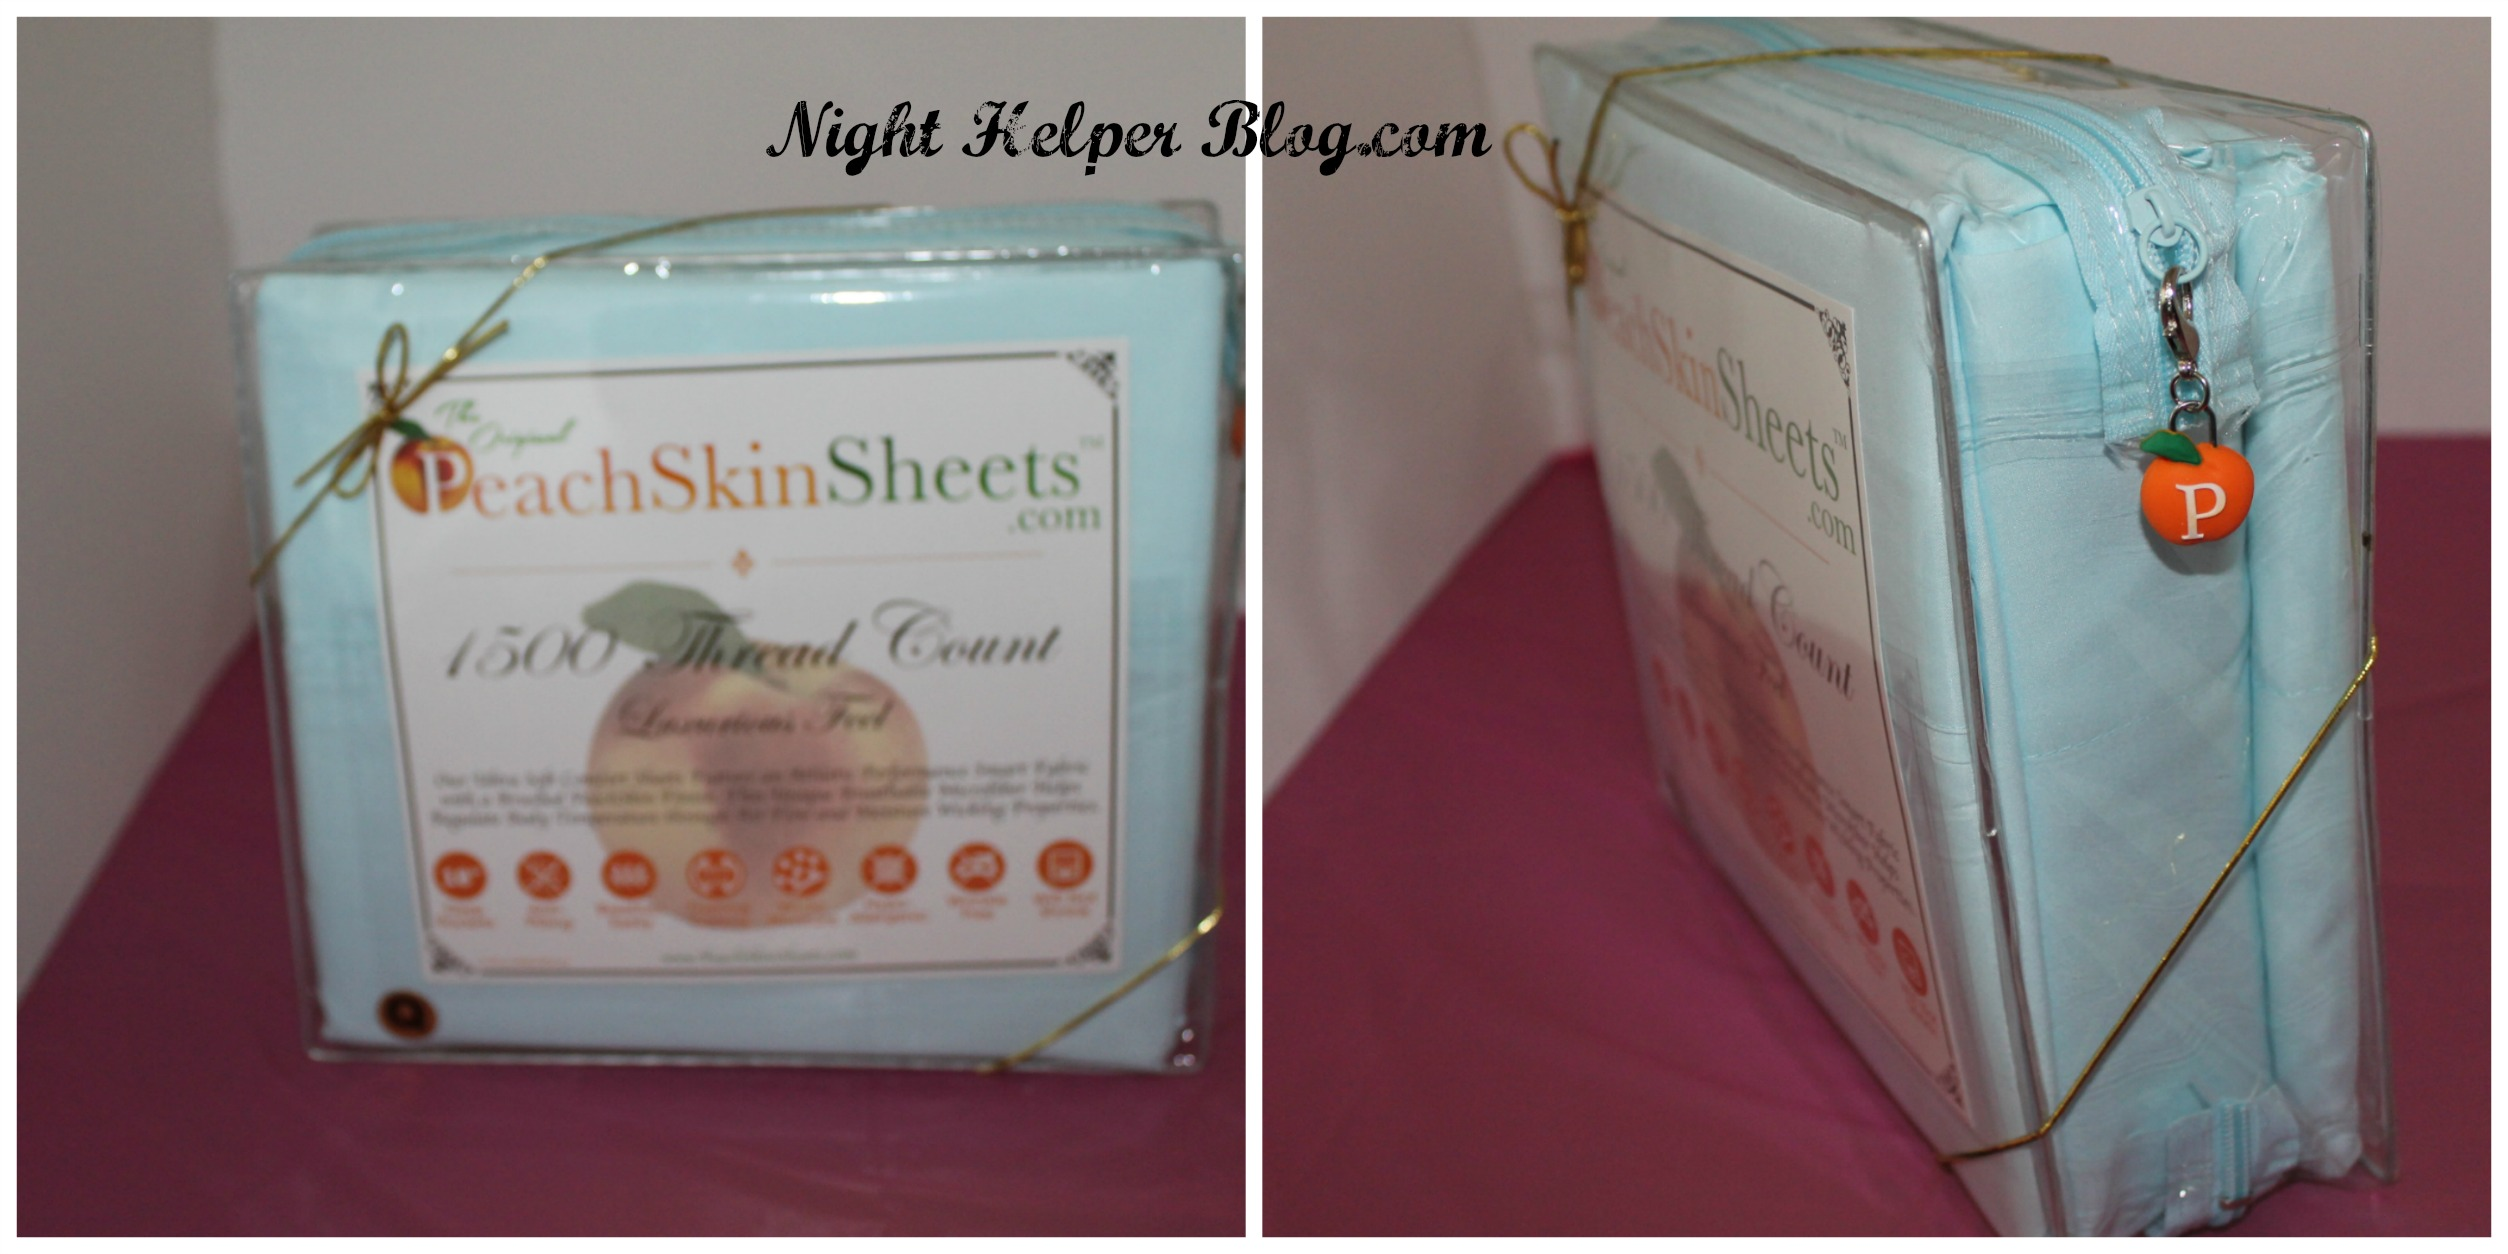 Happy Easter from The Original PeachSkinSheets, ready for a good night sleep.